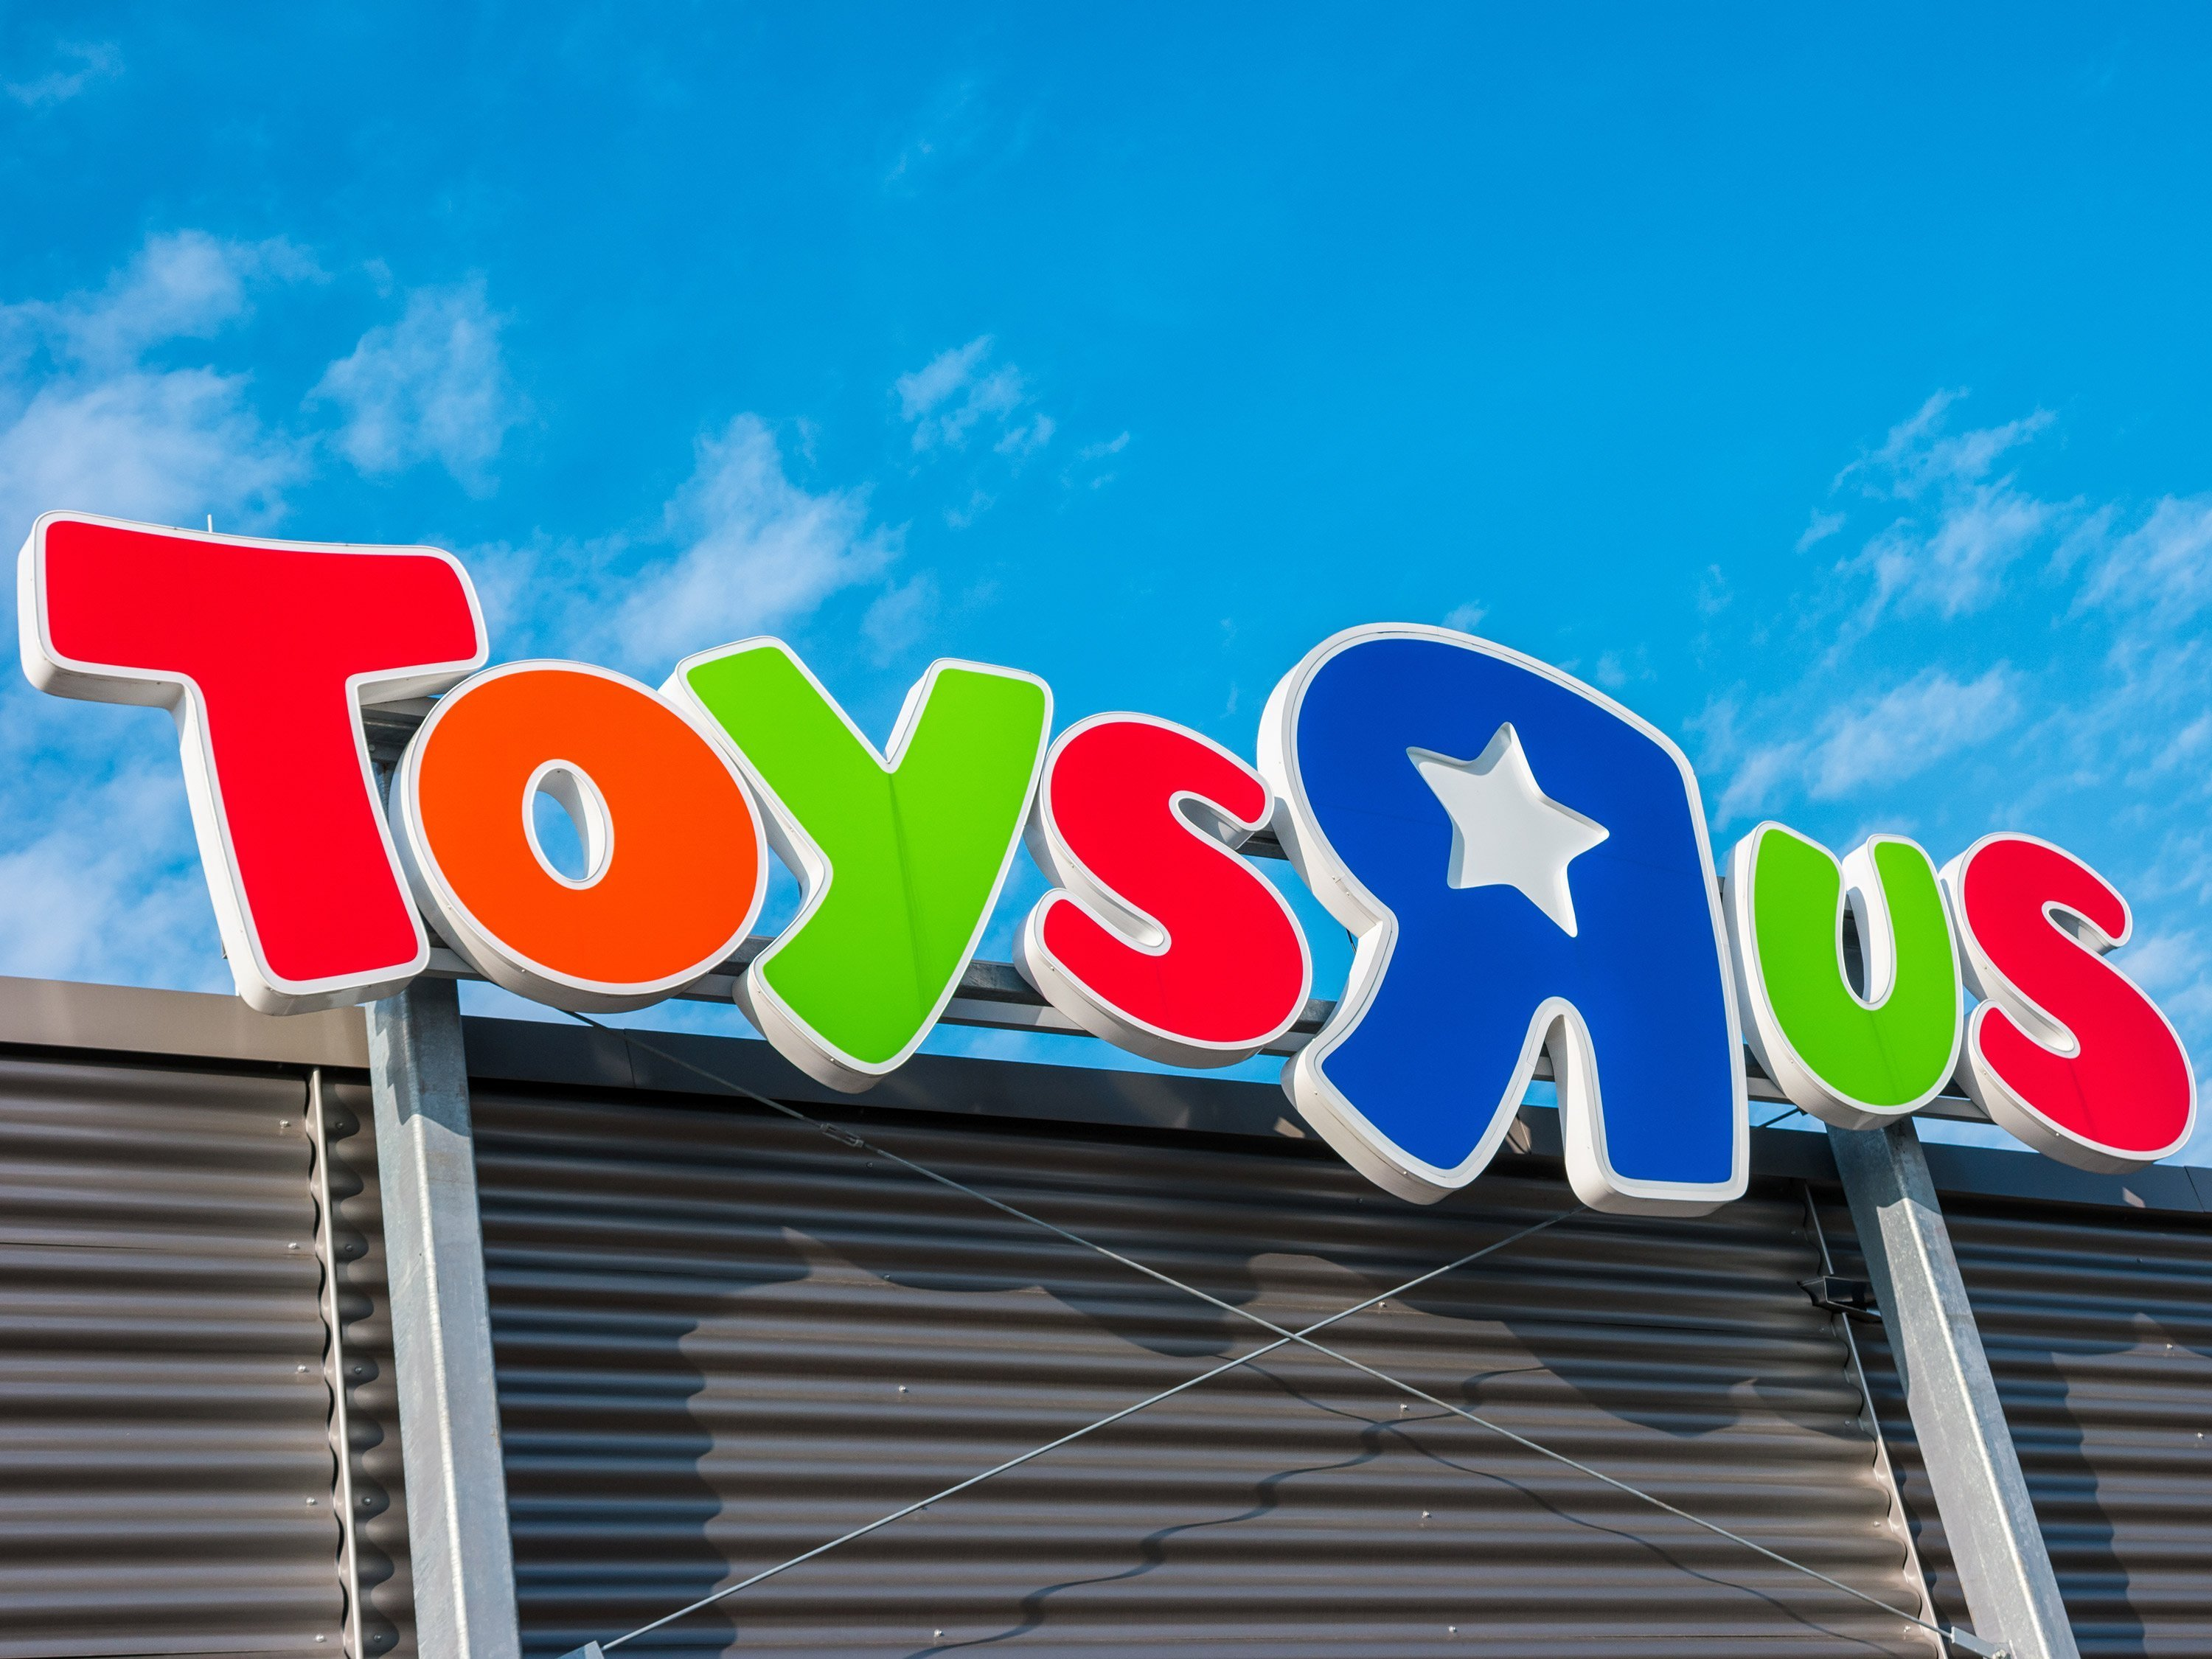 Without Toys R Us, Hasbro sees sales plunge